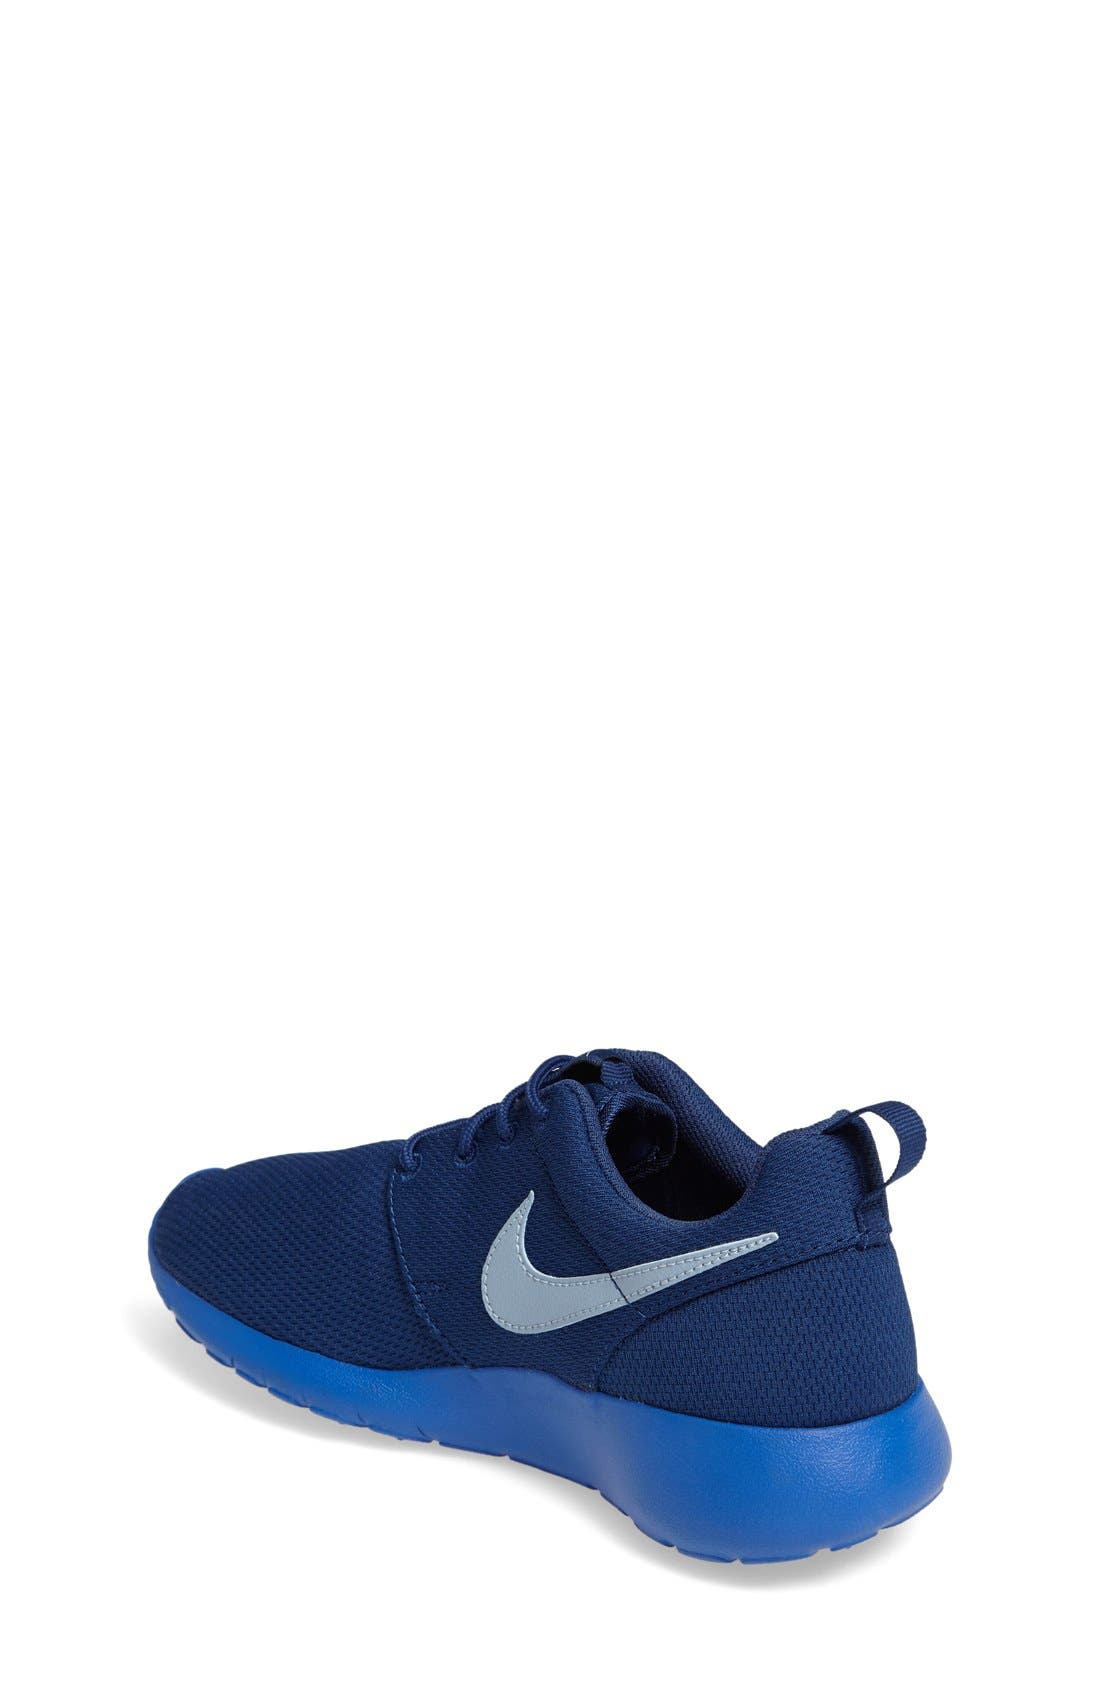 'Roshe Run' Sneaker,                             Alternate thumbnail 92, color,